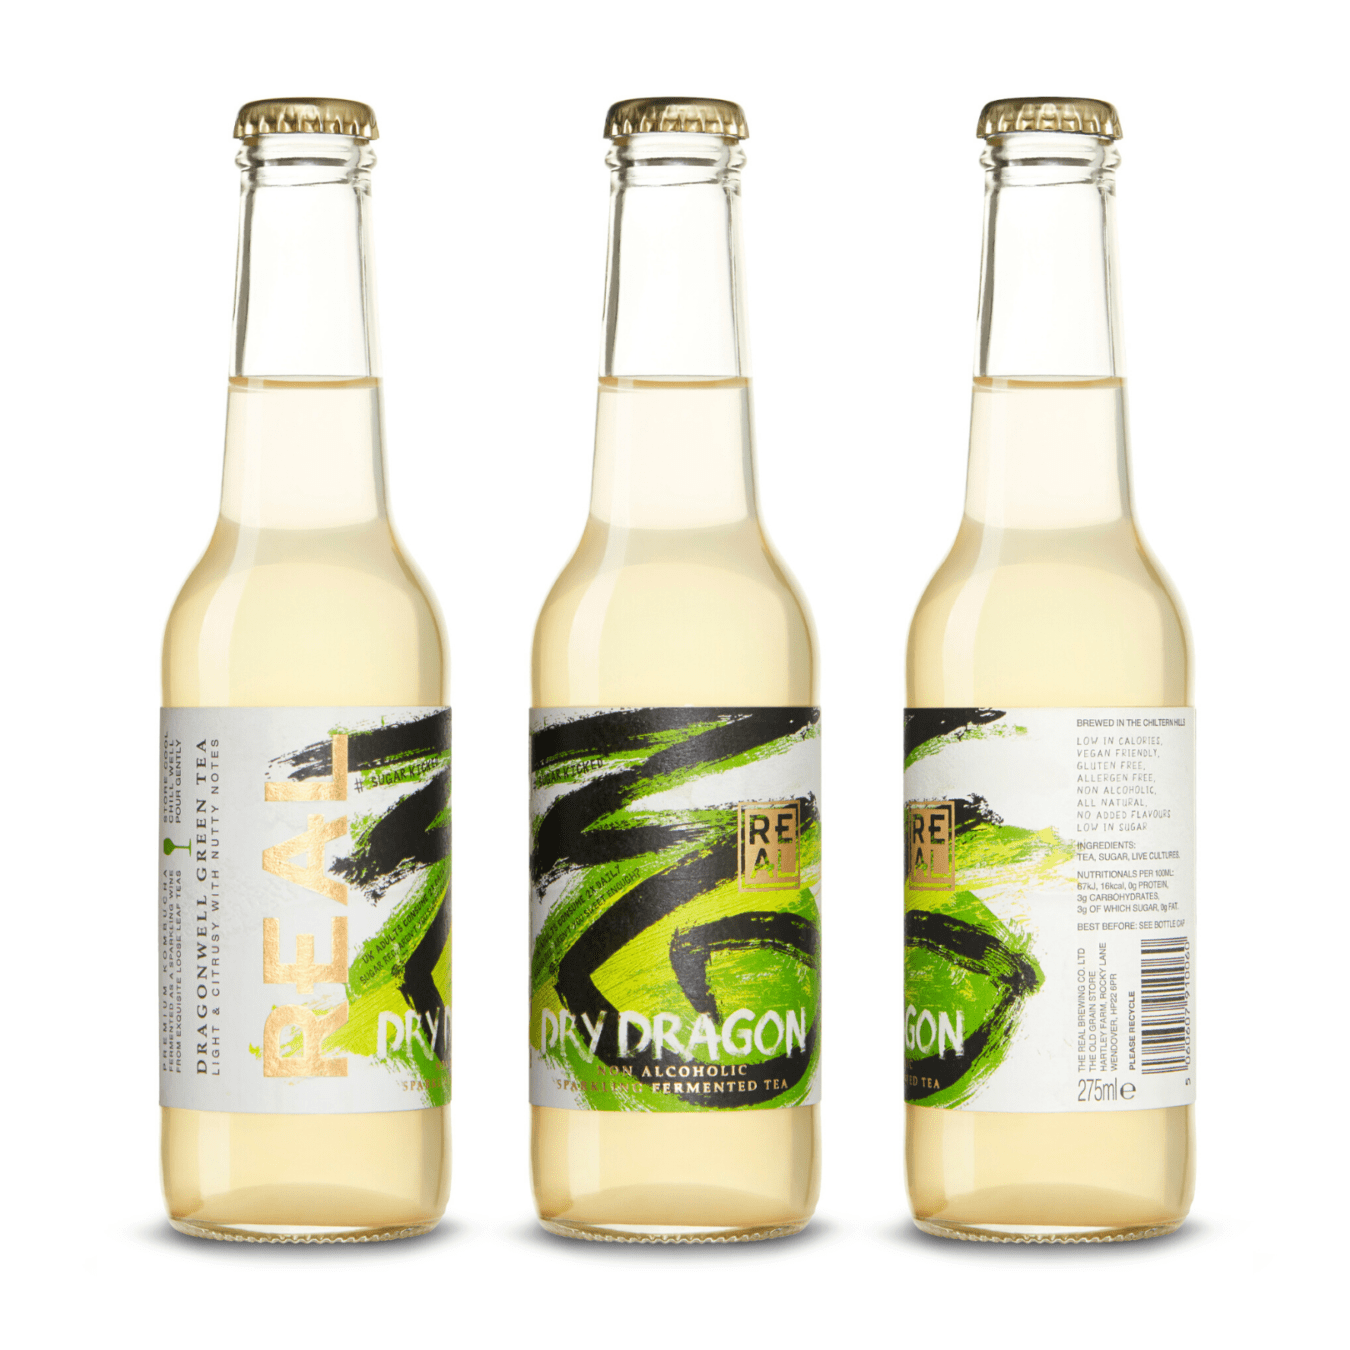 Dry Dragon REAL Kombucha 275ml